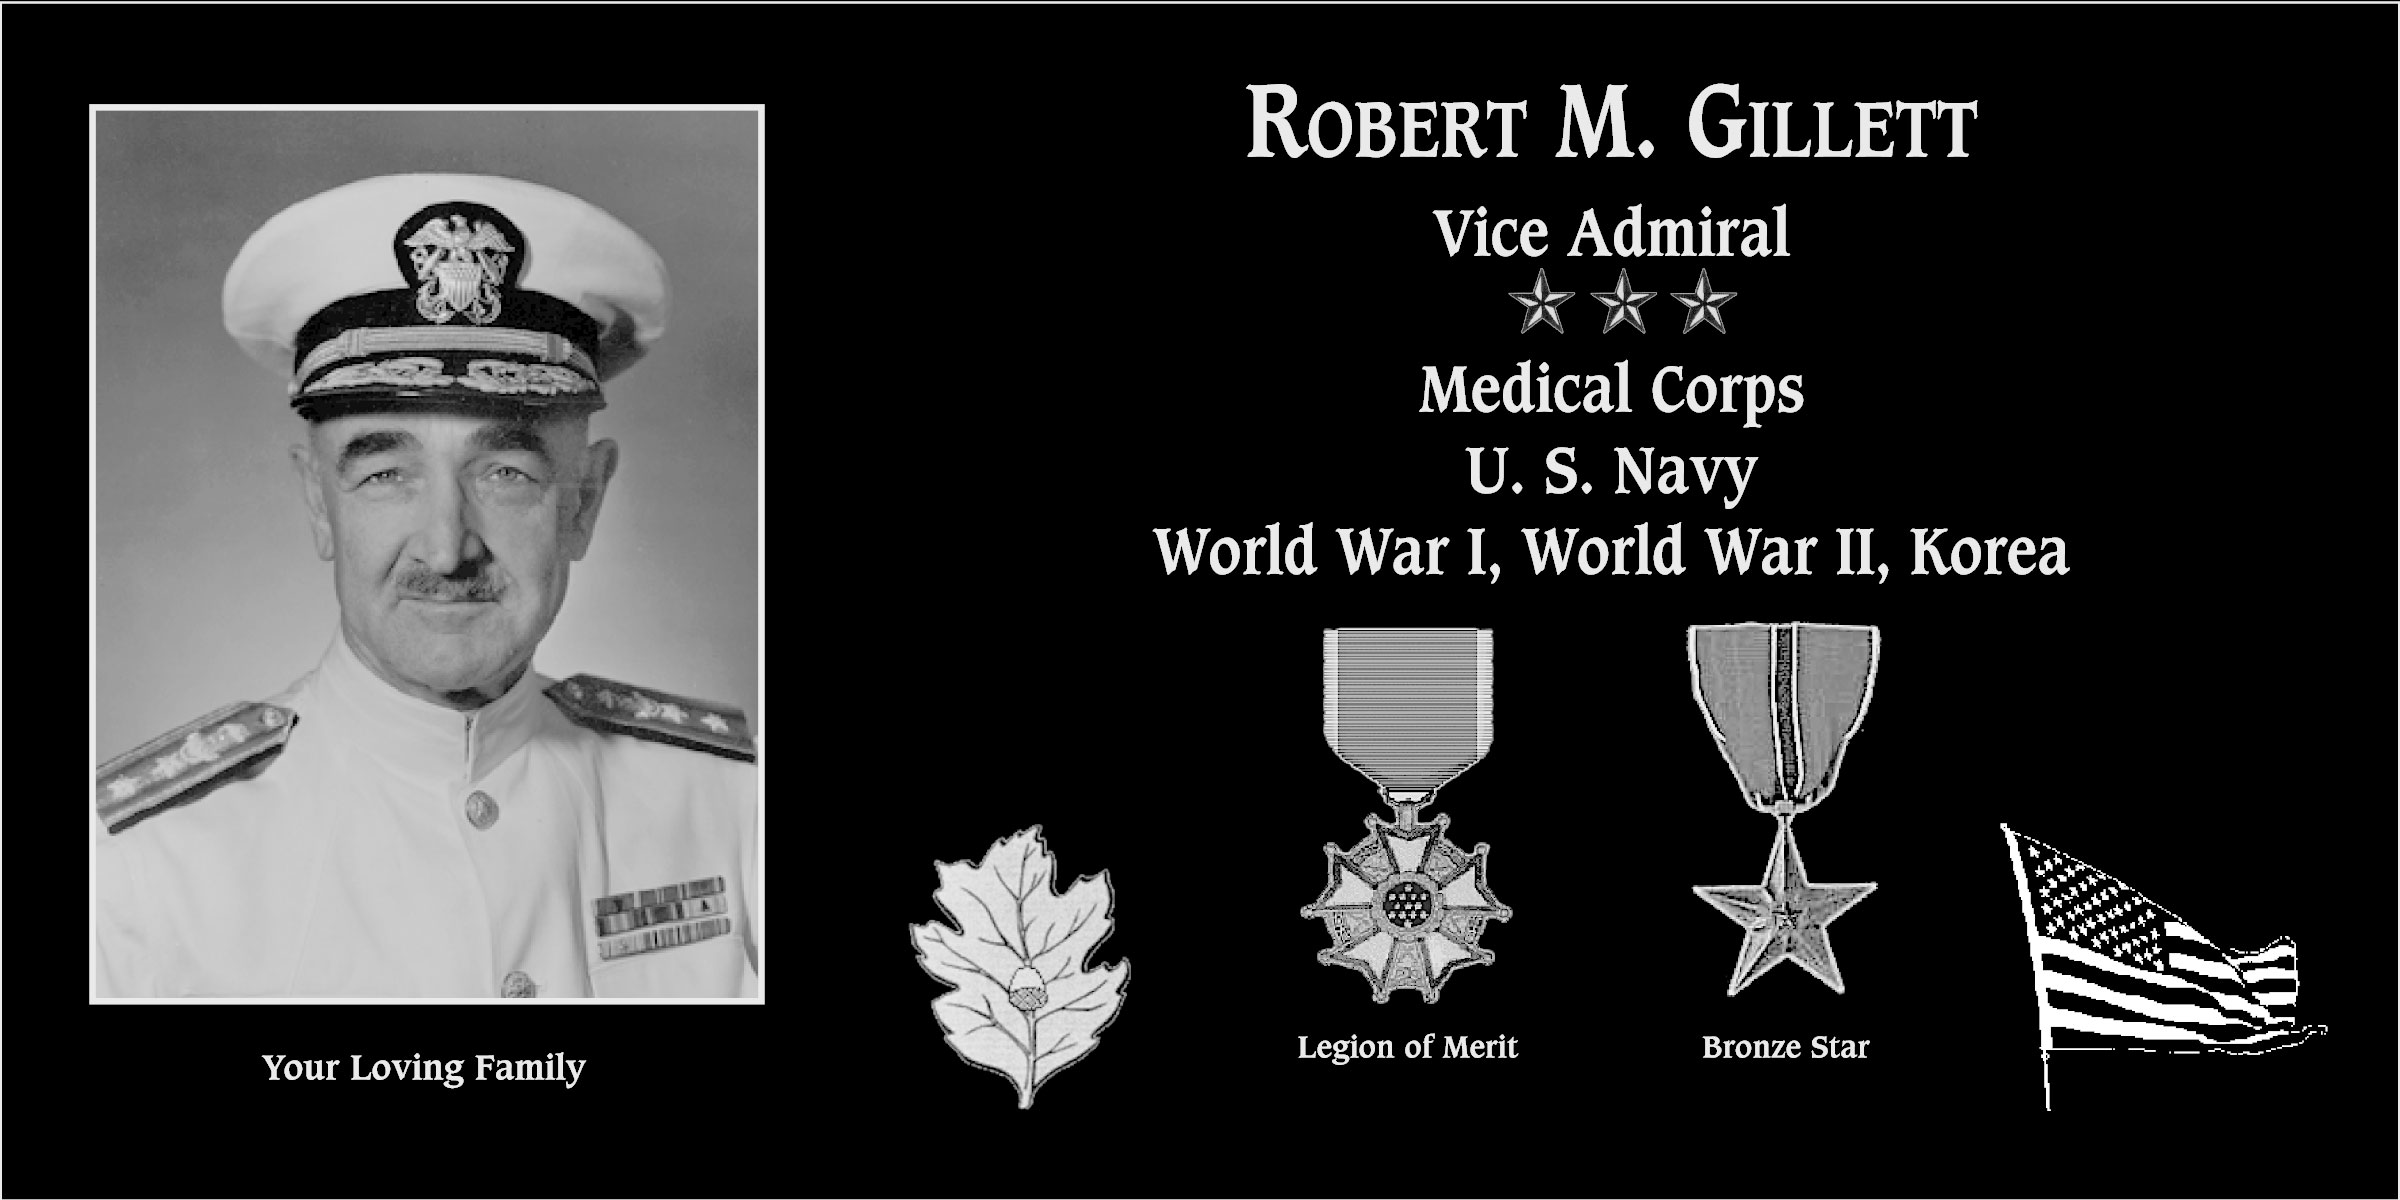 Robert M. Gillett